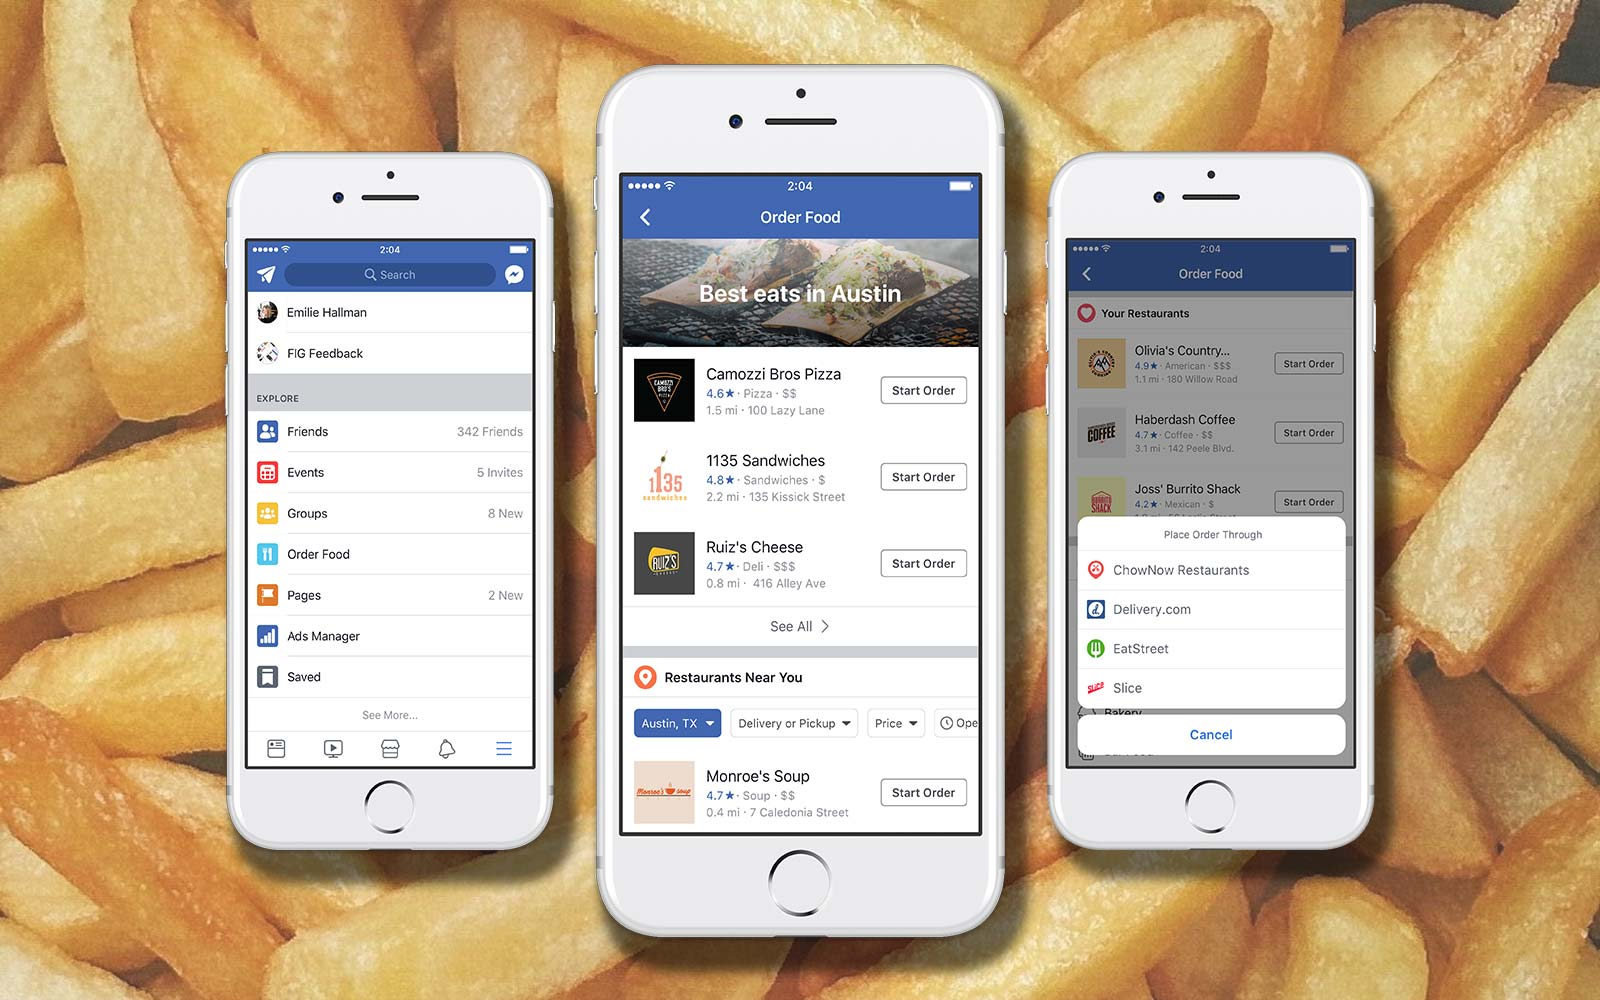 You can now order food directly from Facebook